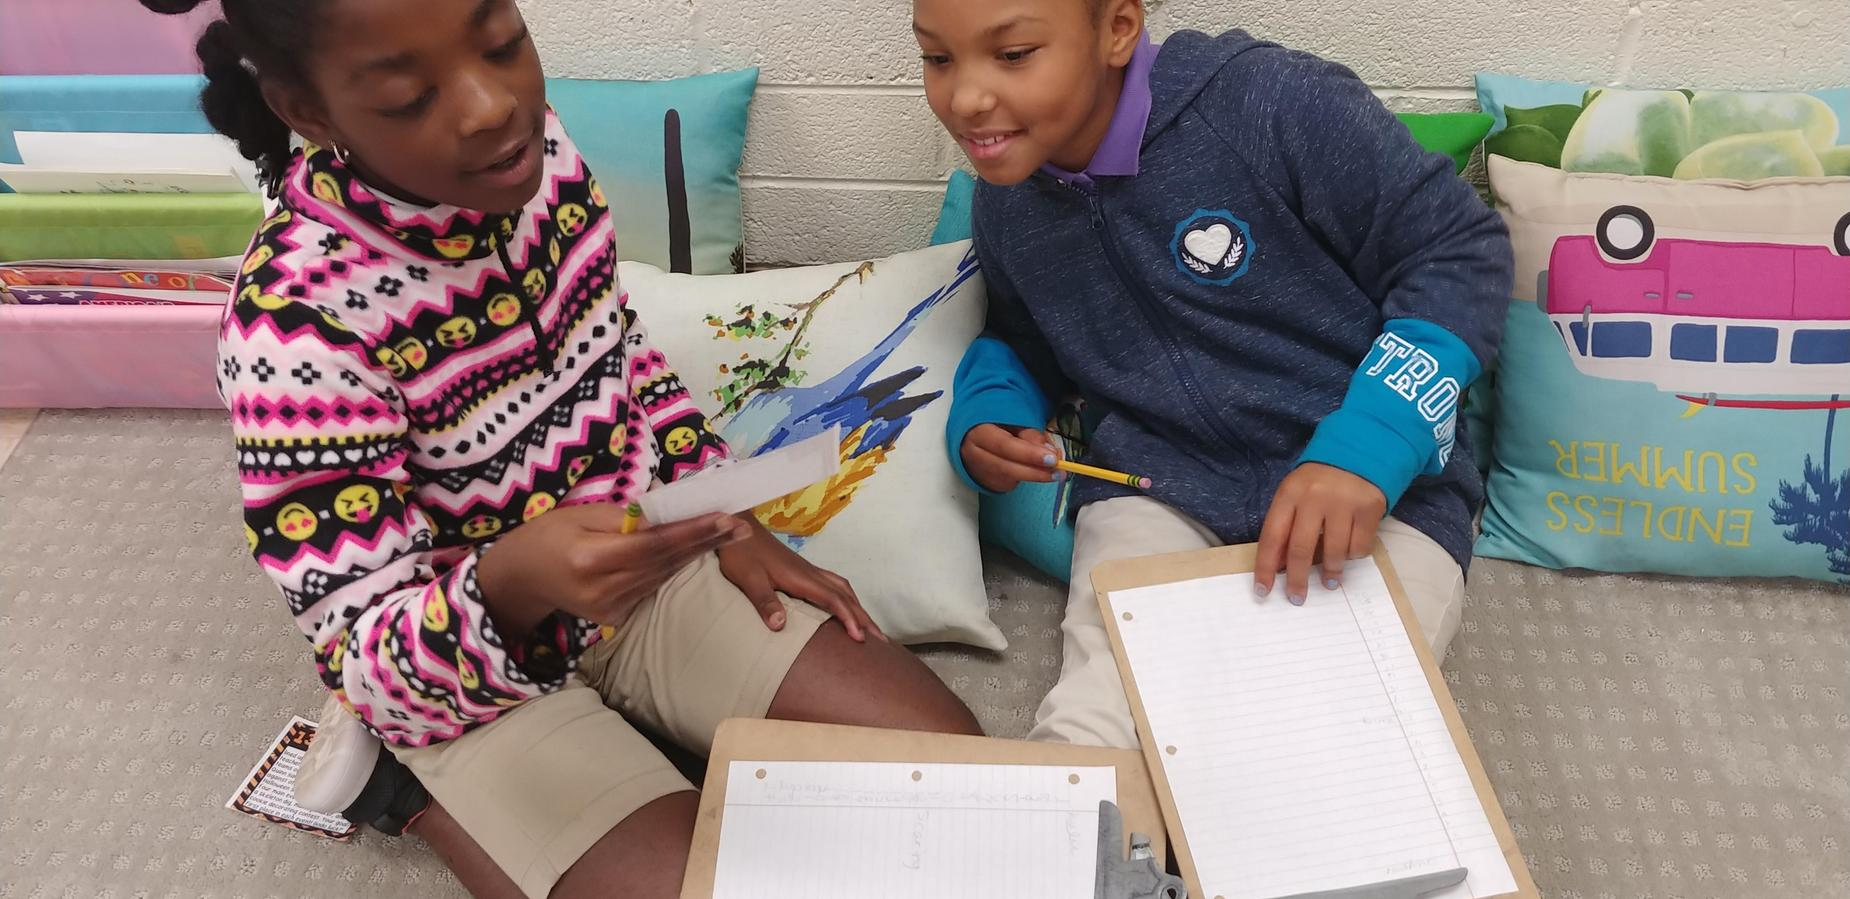 Two students reading from a card.